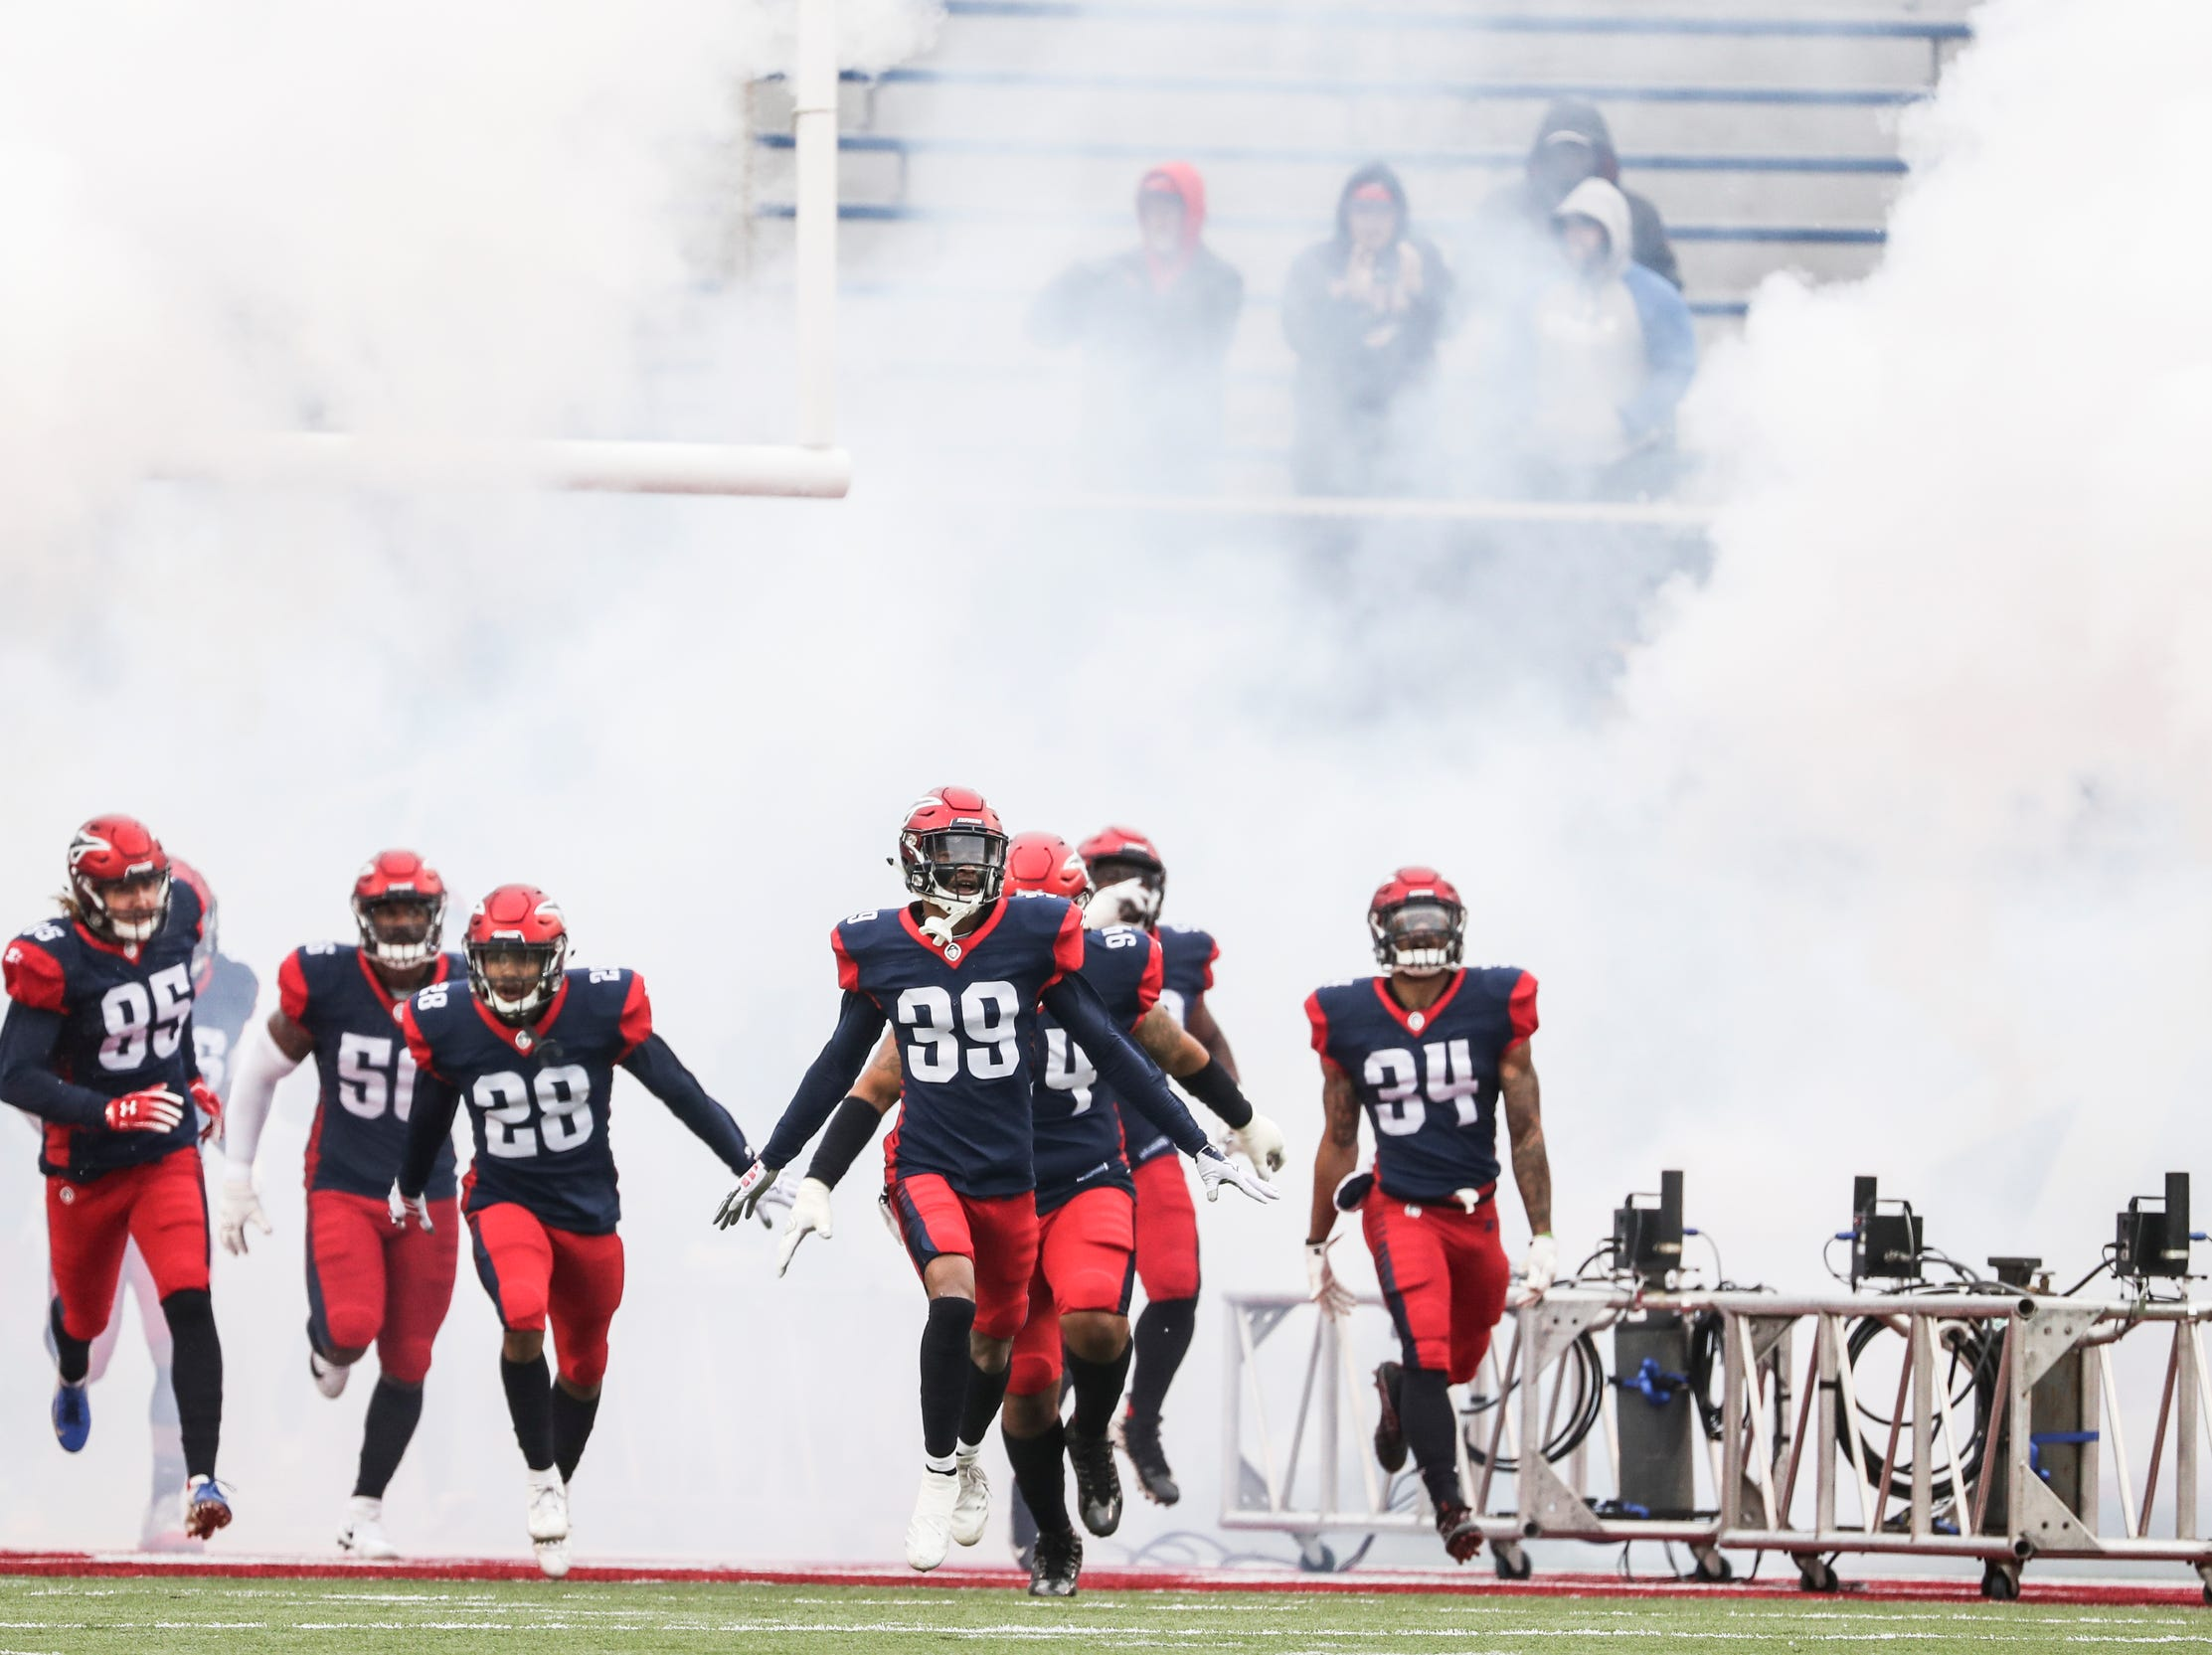 March 02, 2019 - The Memphis Express take the field at the start of Saturday's game against the San Diego Fleet.